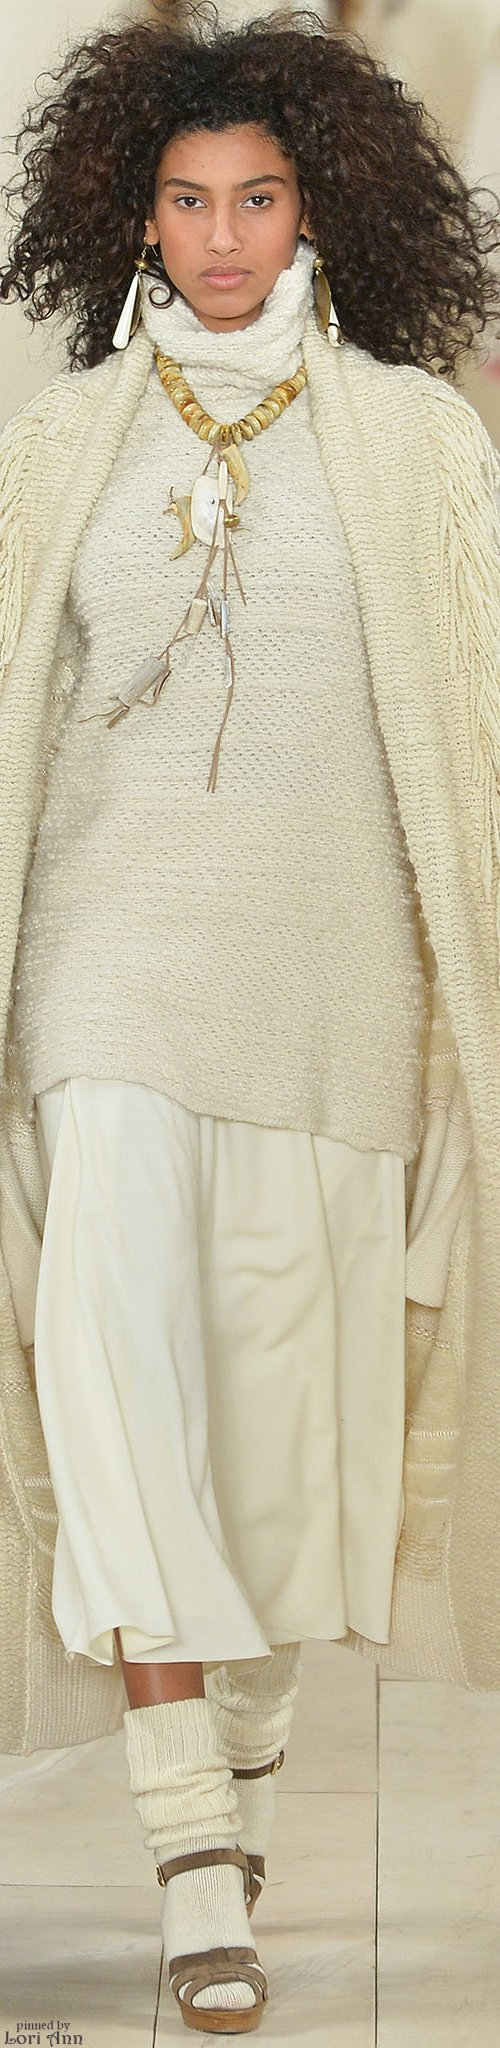 Ralph Lauren ~ Winter White Knit Fall 2015 RTW